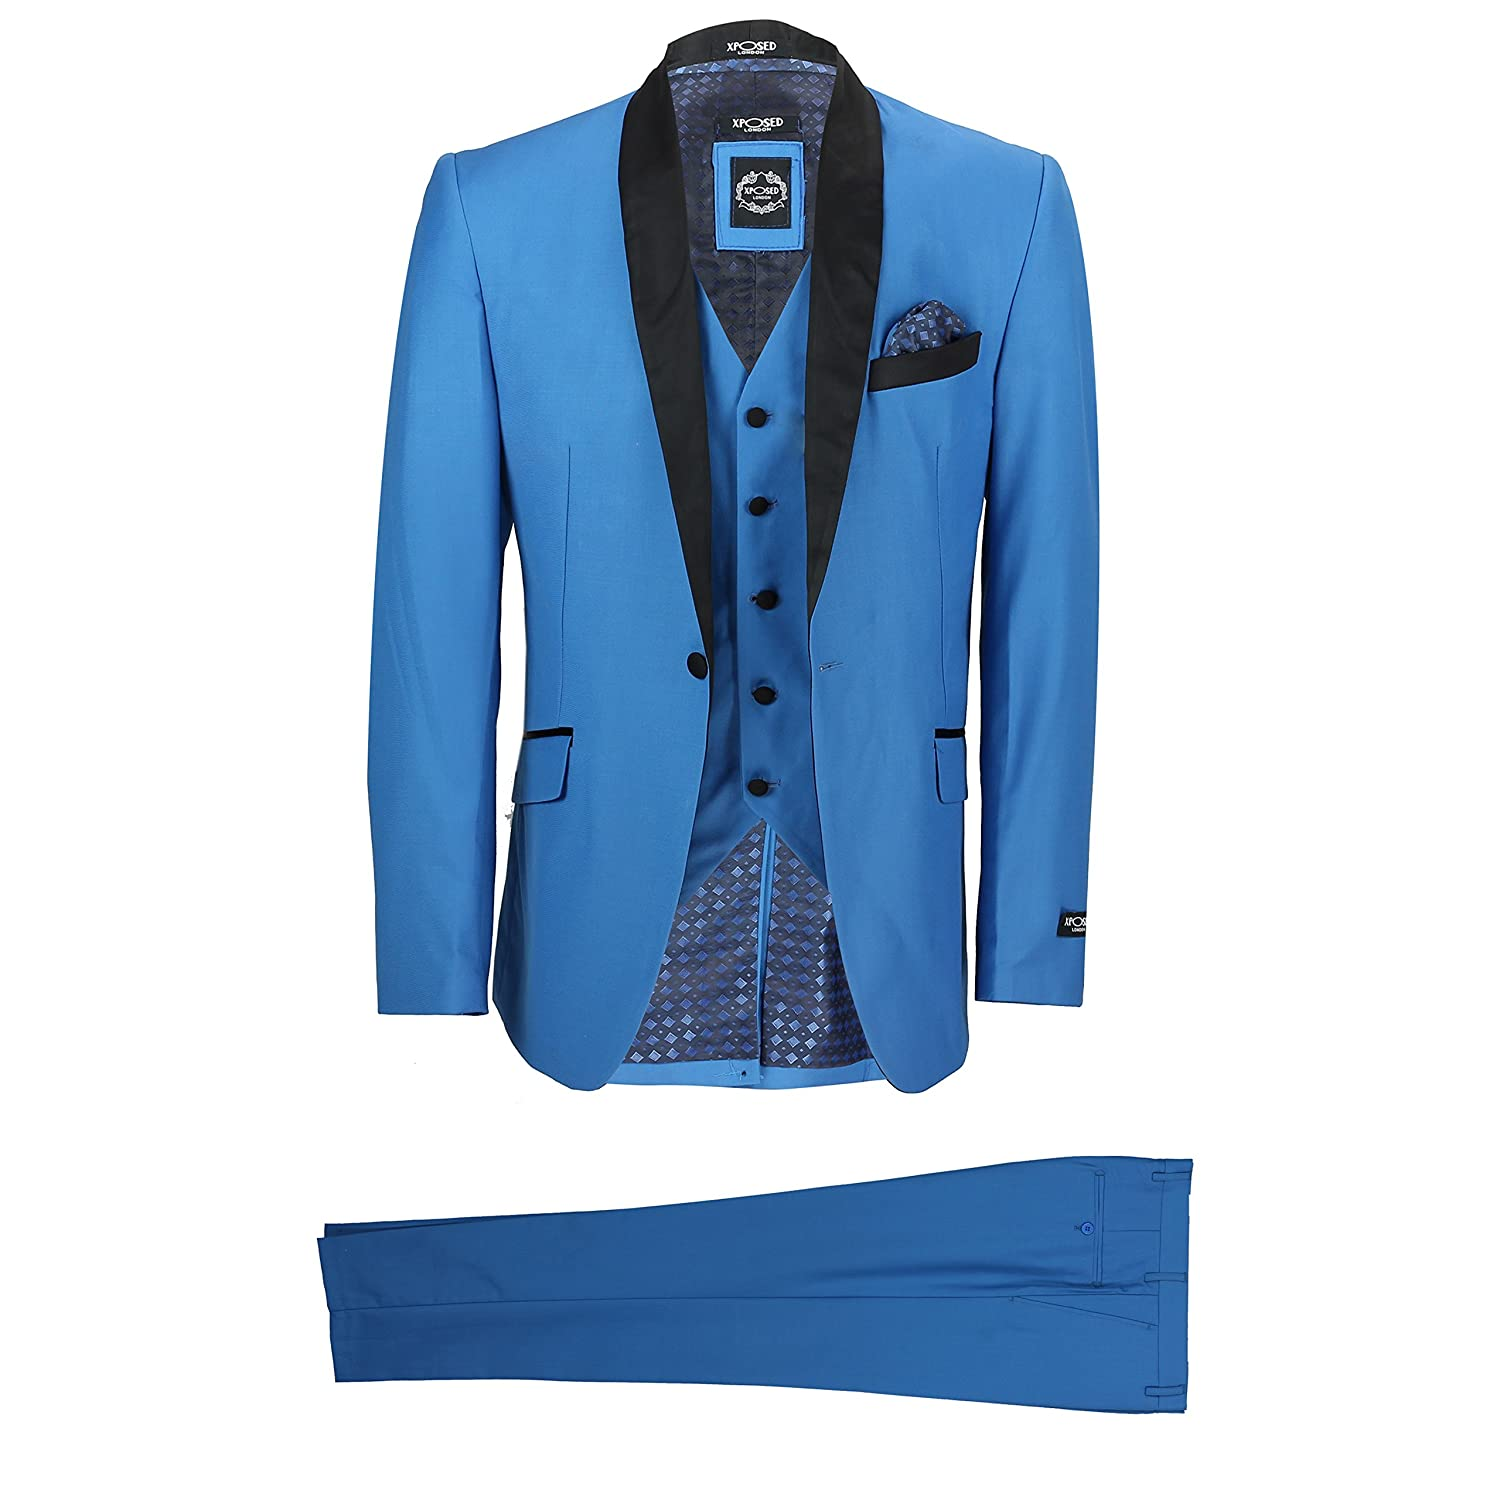 a1fcb19f80c4 XPOSED Mens 3 Piece Suit Teal Blue Shawl Lapels Vintage Smart Tailored Fit  Wedding Party Prom: Amazon.co.uk: Clothing